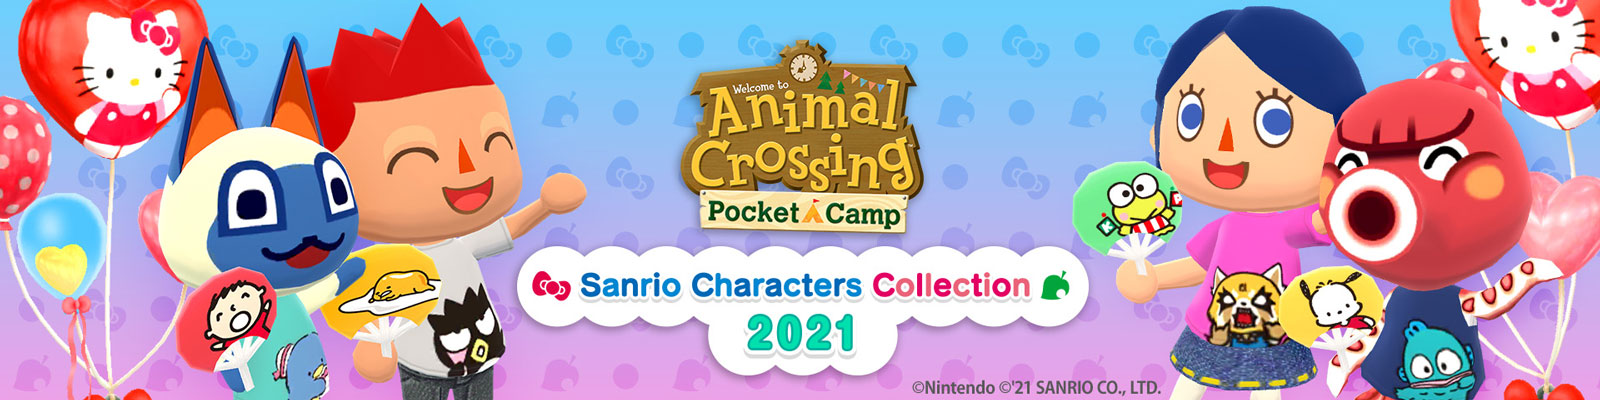 Animal Crossing: Pocket Camp X Sanrio Characters Collection 2021